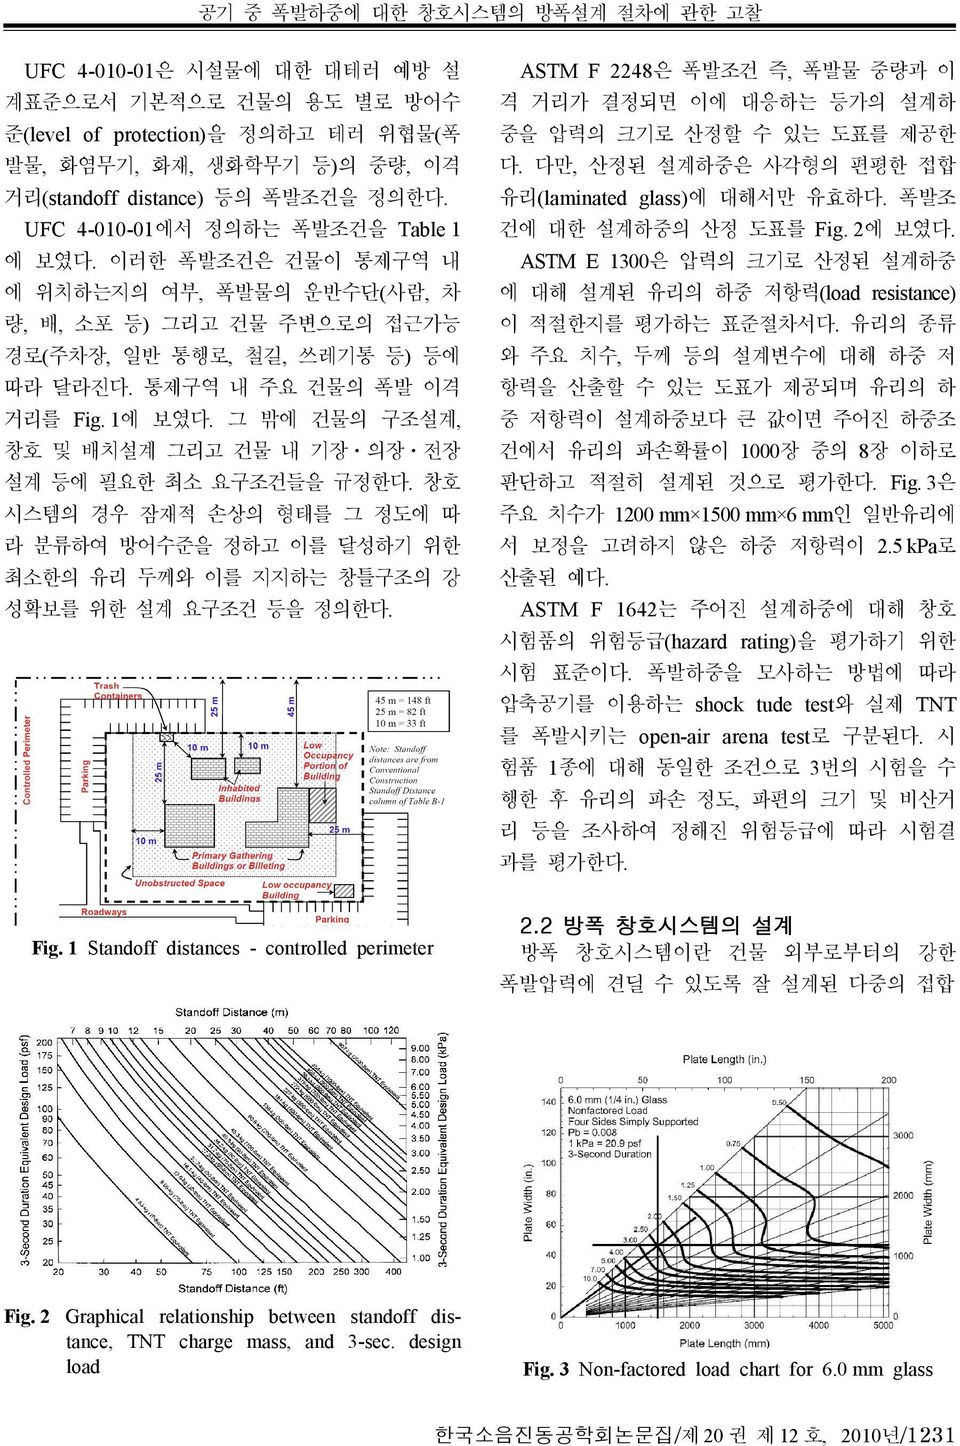 Astm c1231 pdf masturbation at home for Astm table 52 pdf